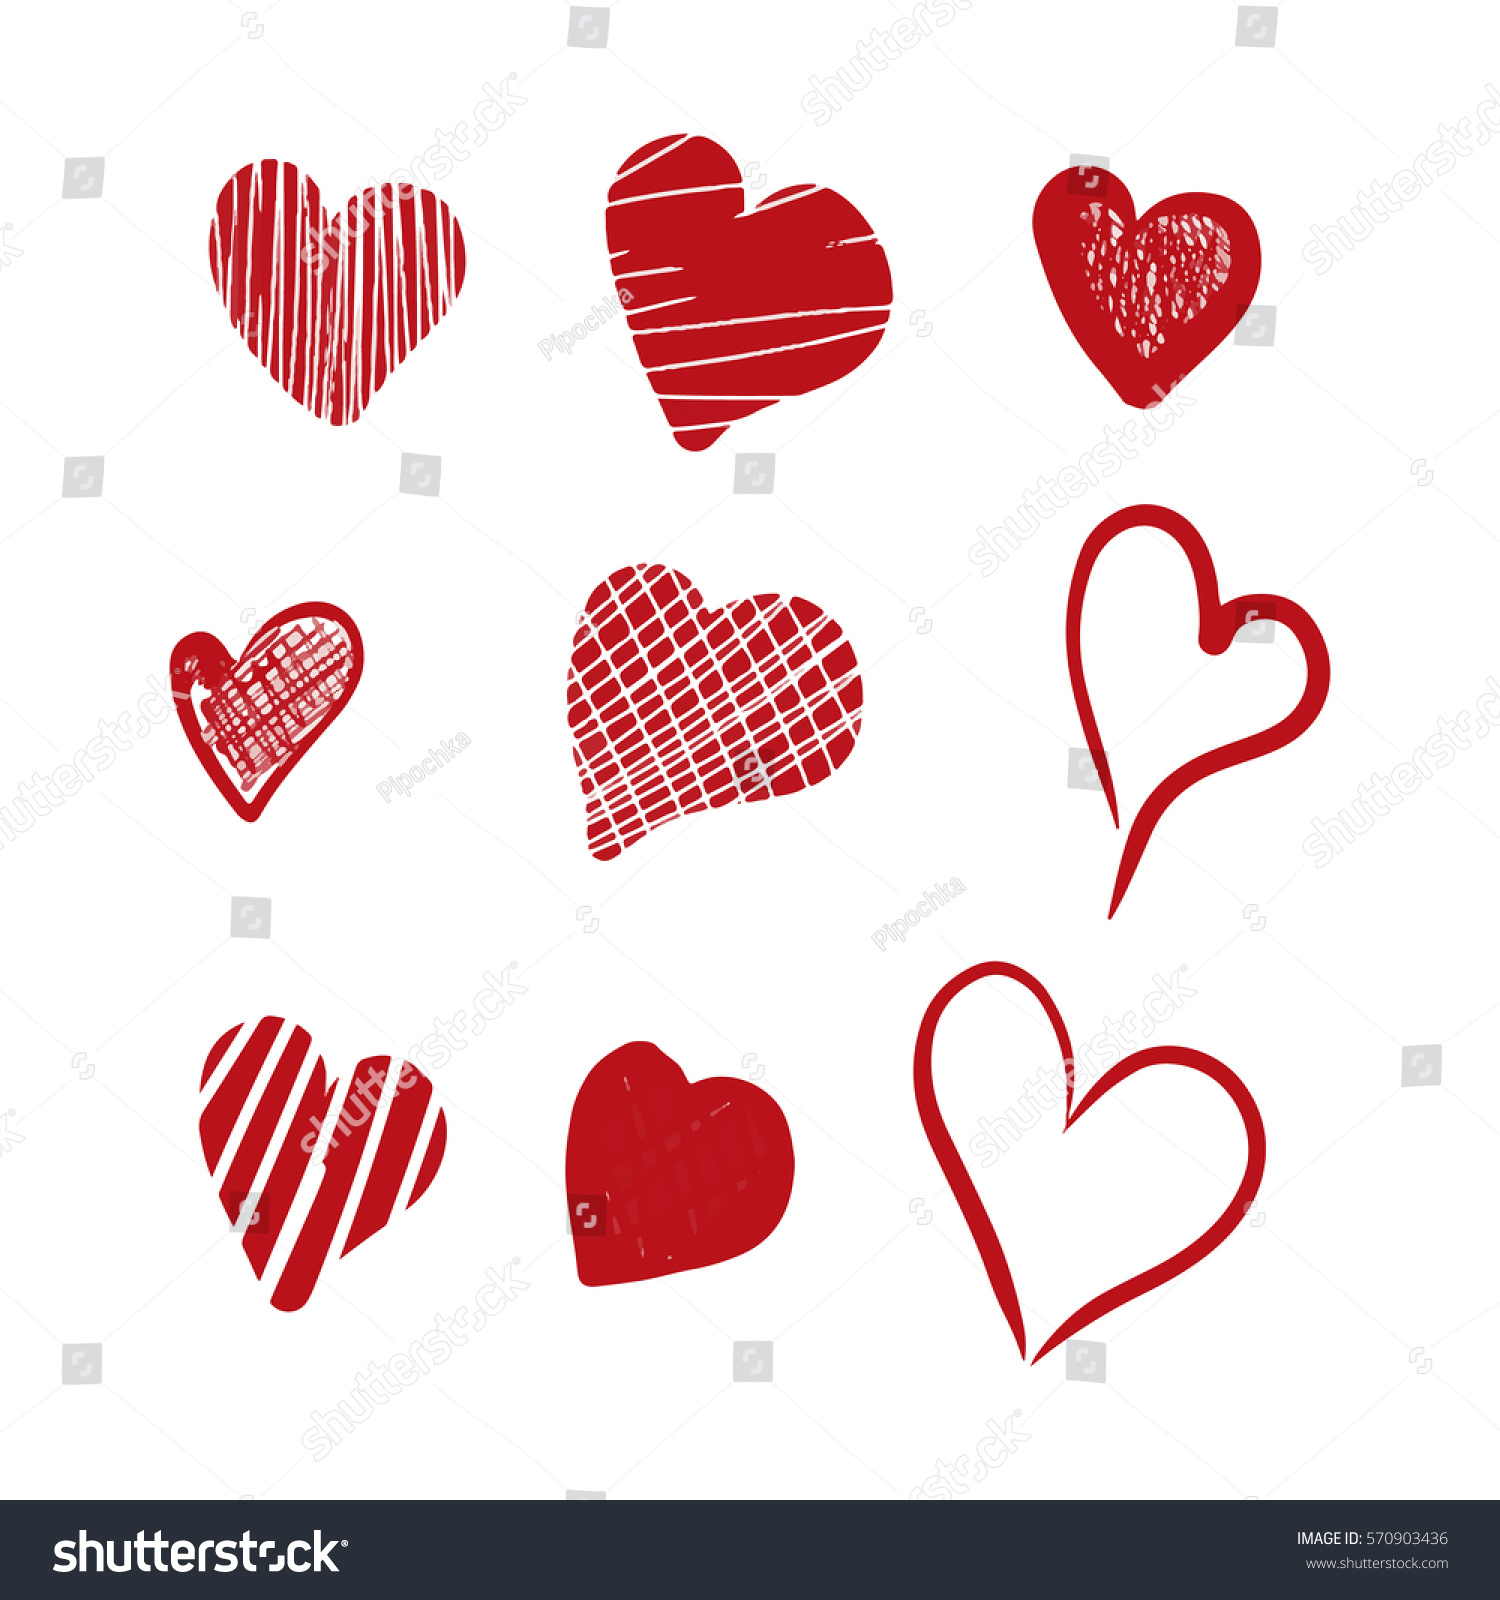 Collection Hand Drawn Sketch Red Heart Stock Illustration 570903436 ...